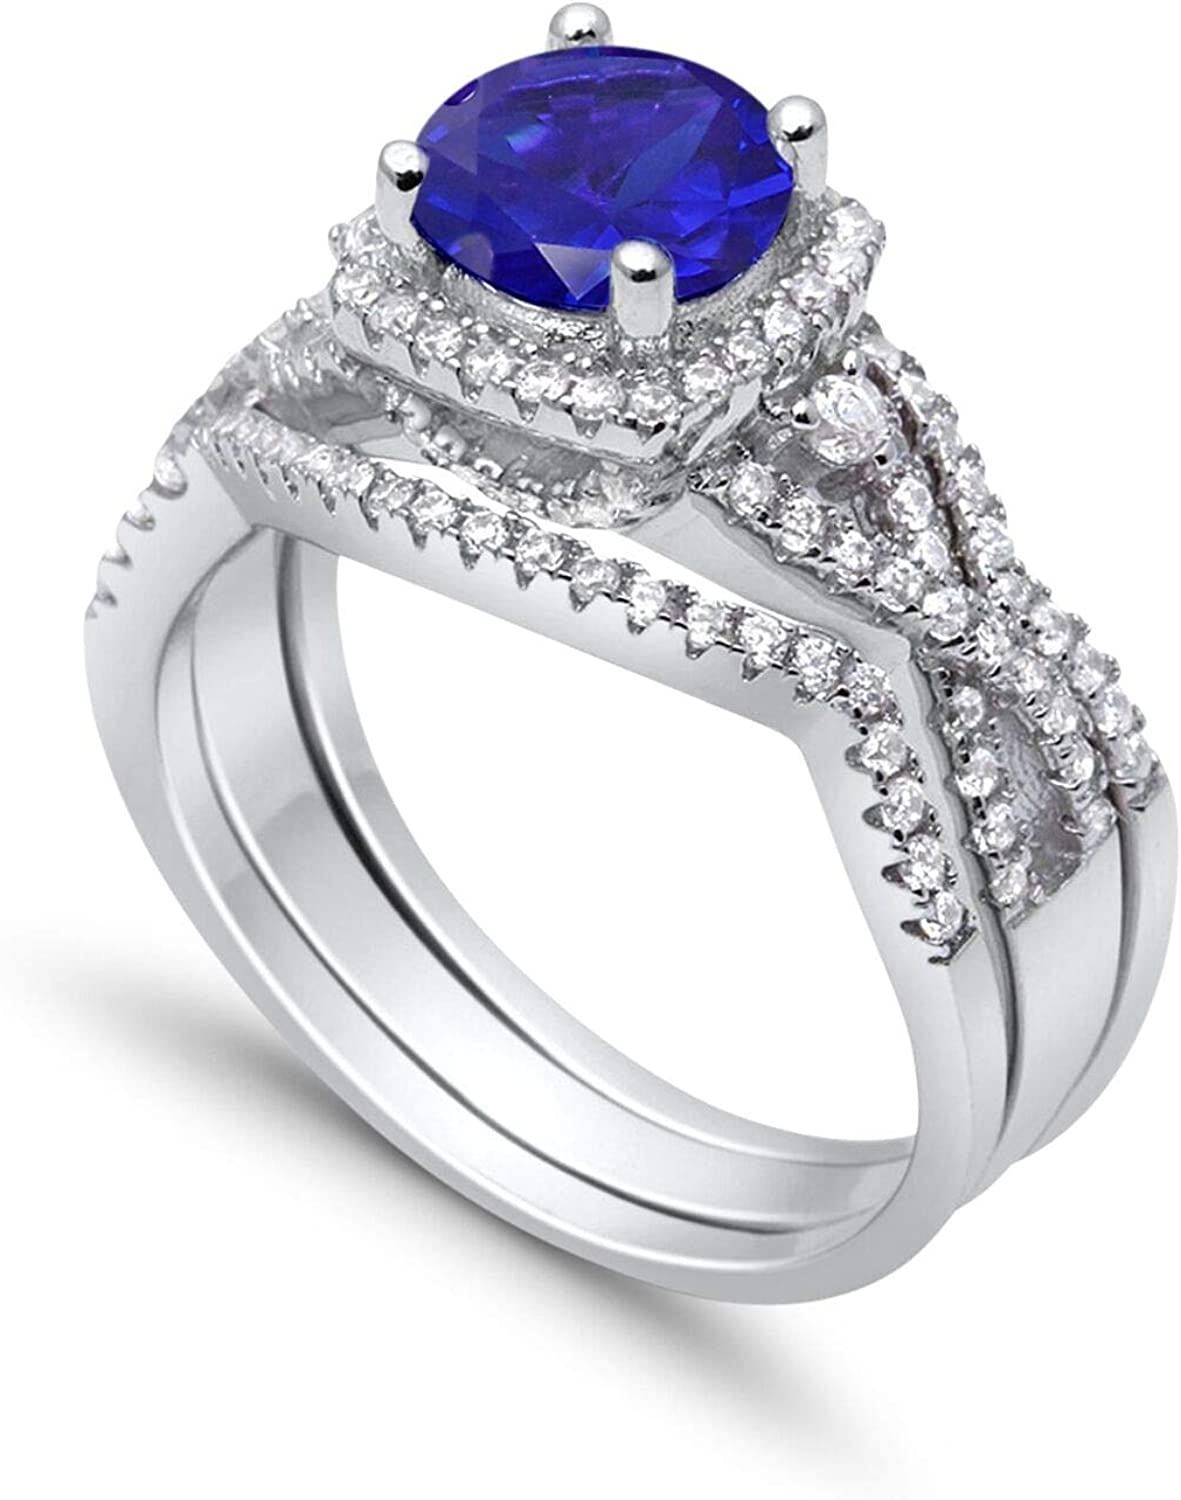 Blue Apple Co. Three Piece Trio Set Wedding Ring Infinity Round Simulated Sapphire 925 Sterling Silver CZ